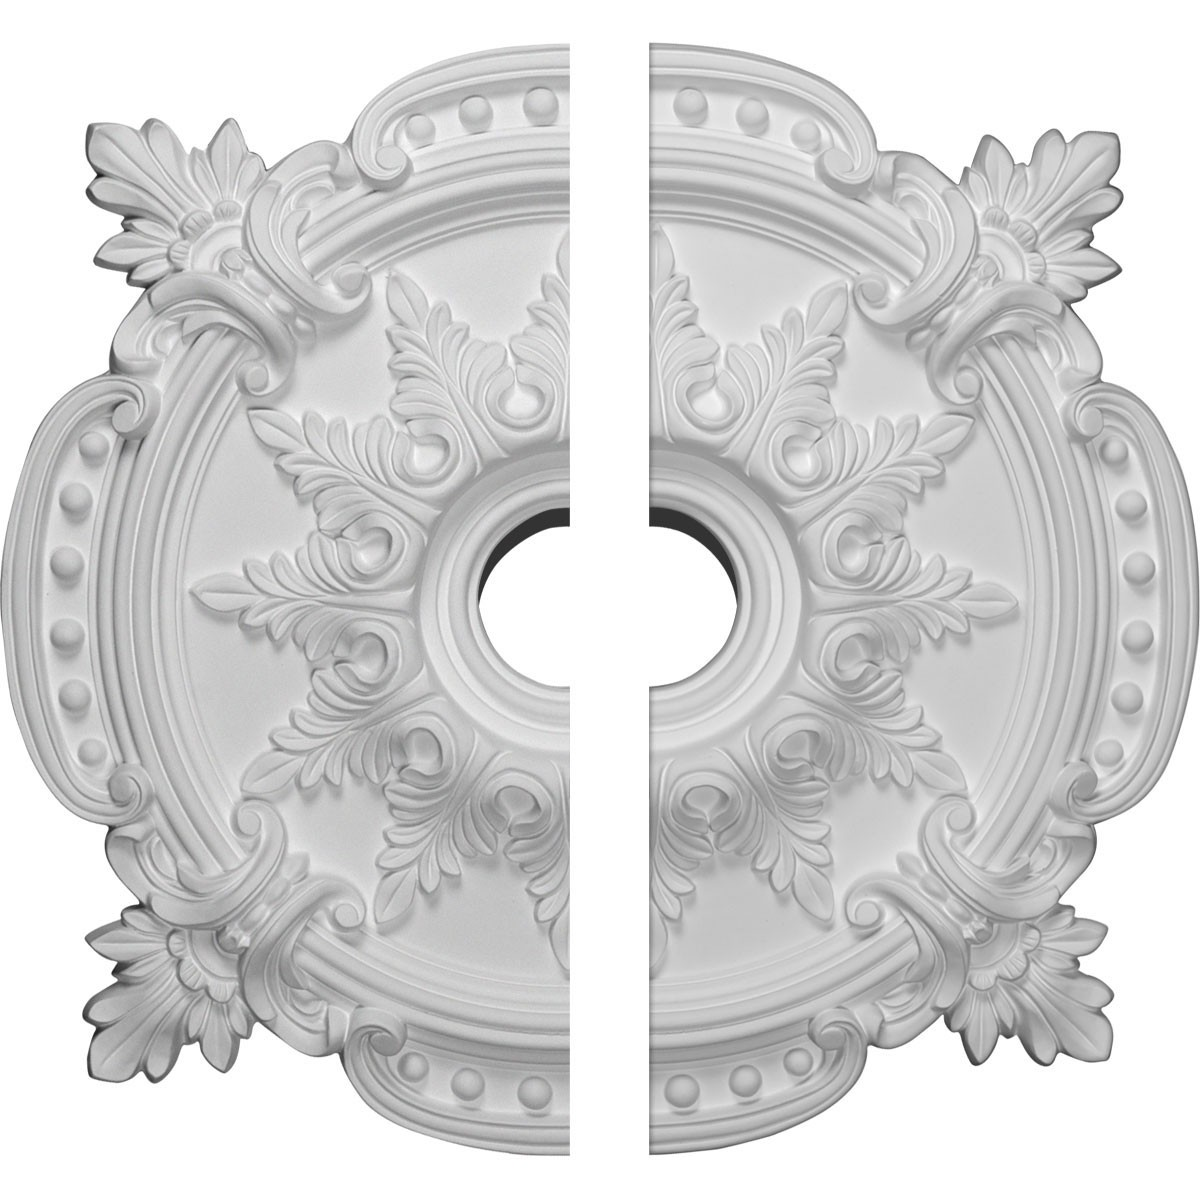 """EM-CM28BE2 - 28 3/8""""OD x 4 1/2""""ID x 1 5/8""""P Benson Classic Ceiling Medallion, Two Piece (Fits Canopies up to 6 1/2"""")"""